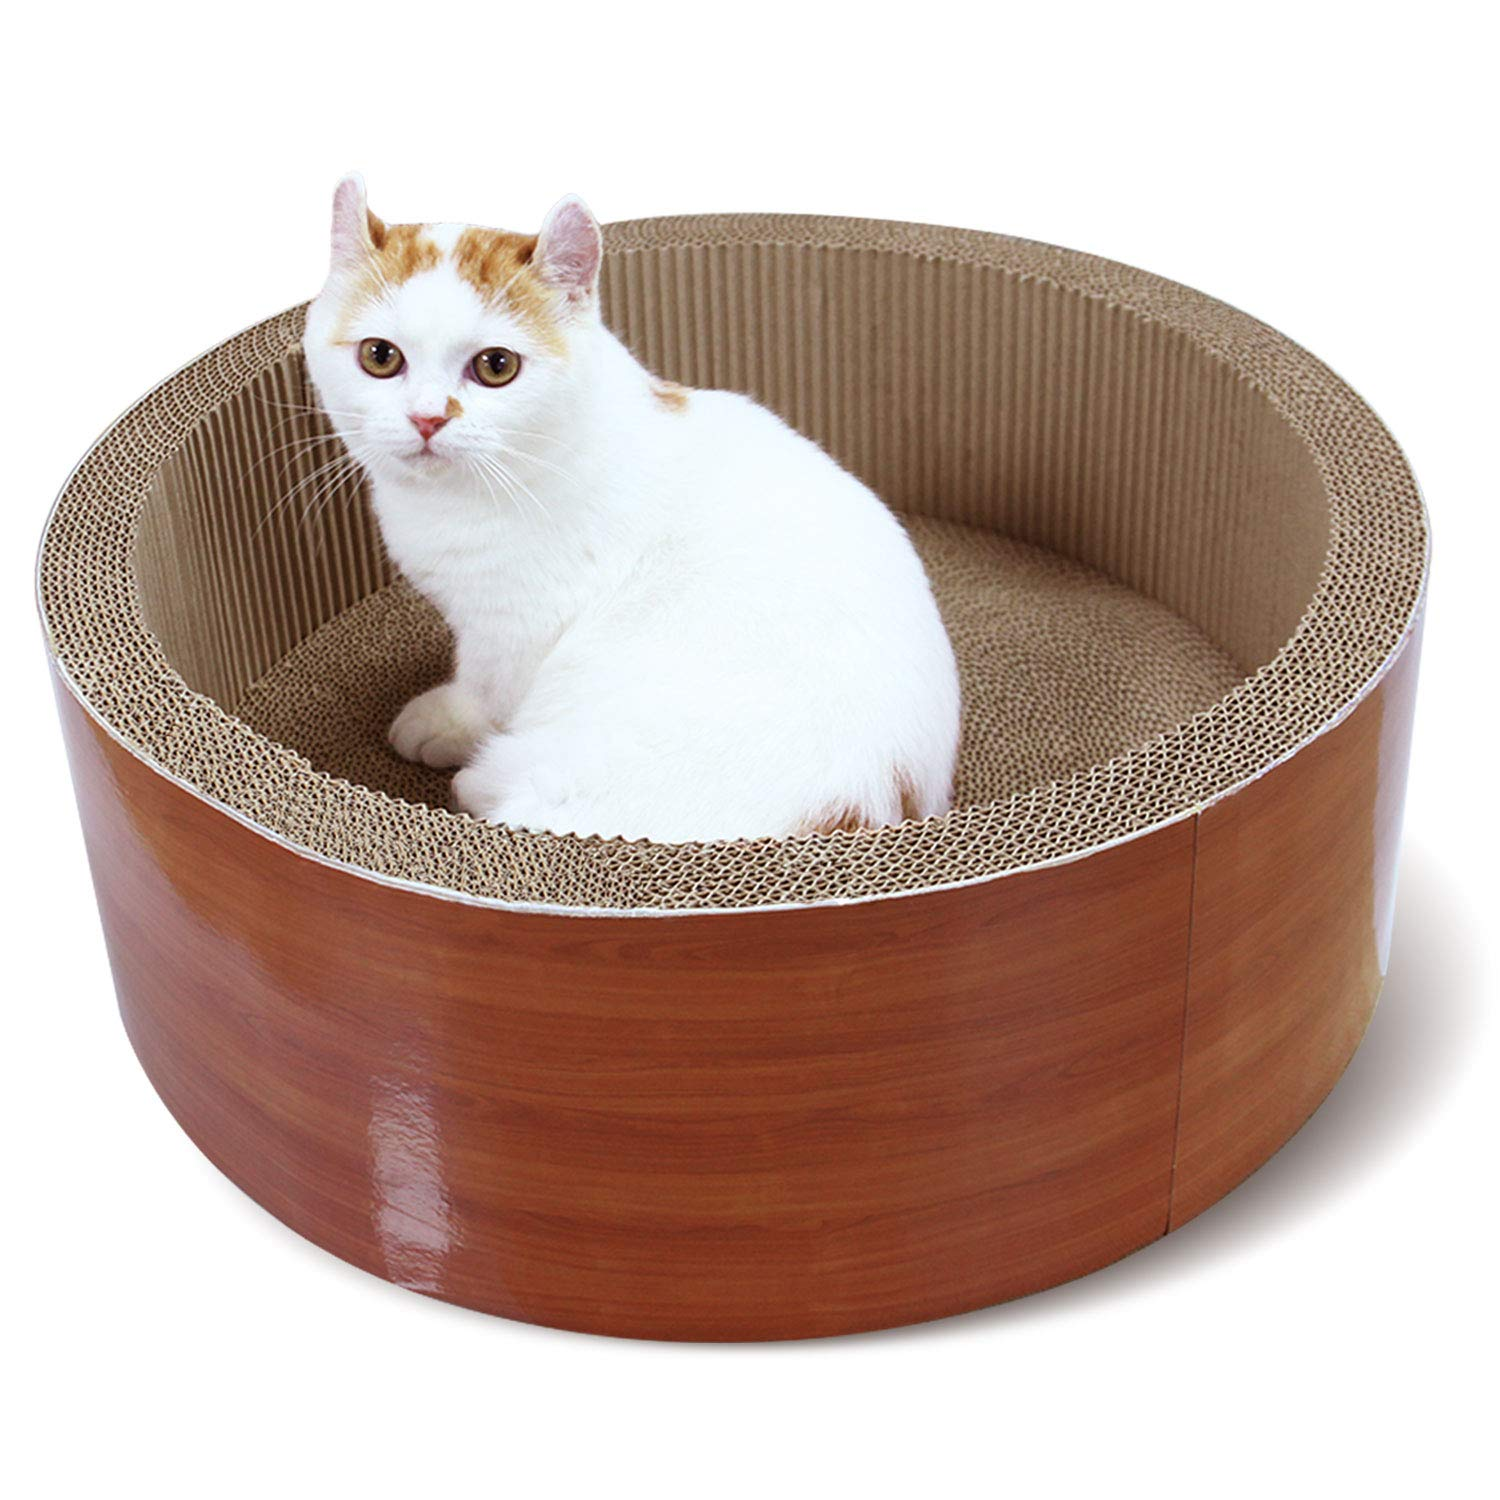 ScratchMe Cat Scratching Post Lounge Bed, Round Shape Cat Scratcher Cardboard Board Pads with Catnip, Durable Recycle Pad Toy Prevents Furniture Damage by ScratchMe